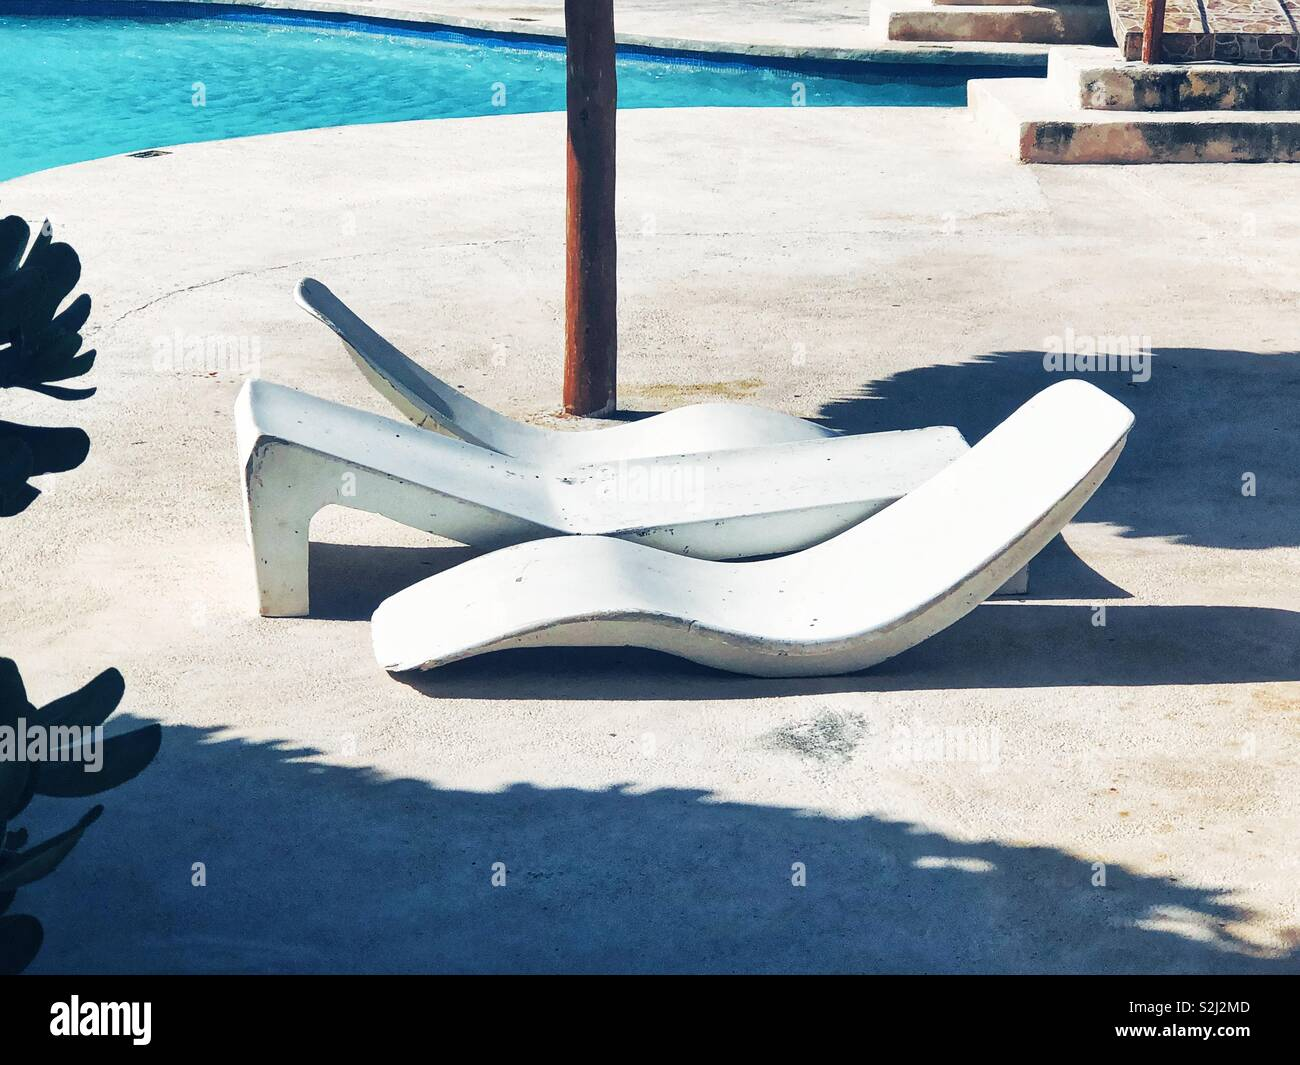 modern chaise lounges by the pool in Mexico - Stock Image